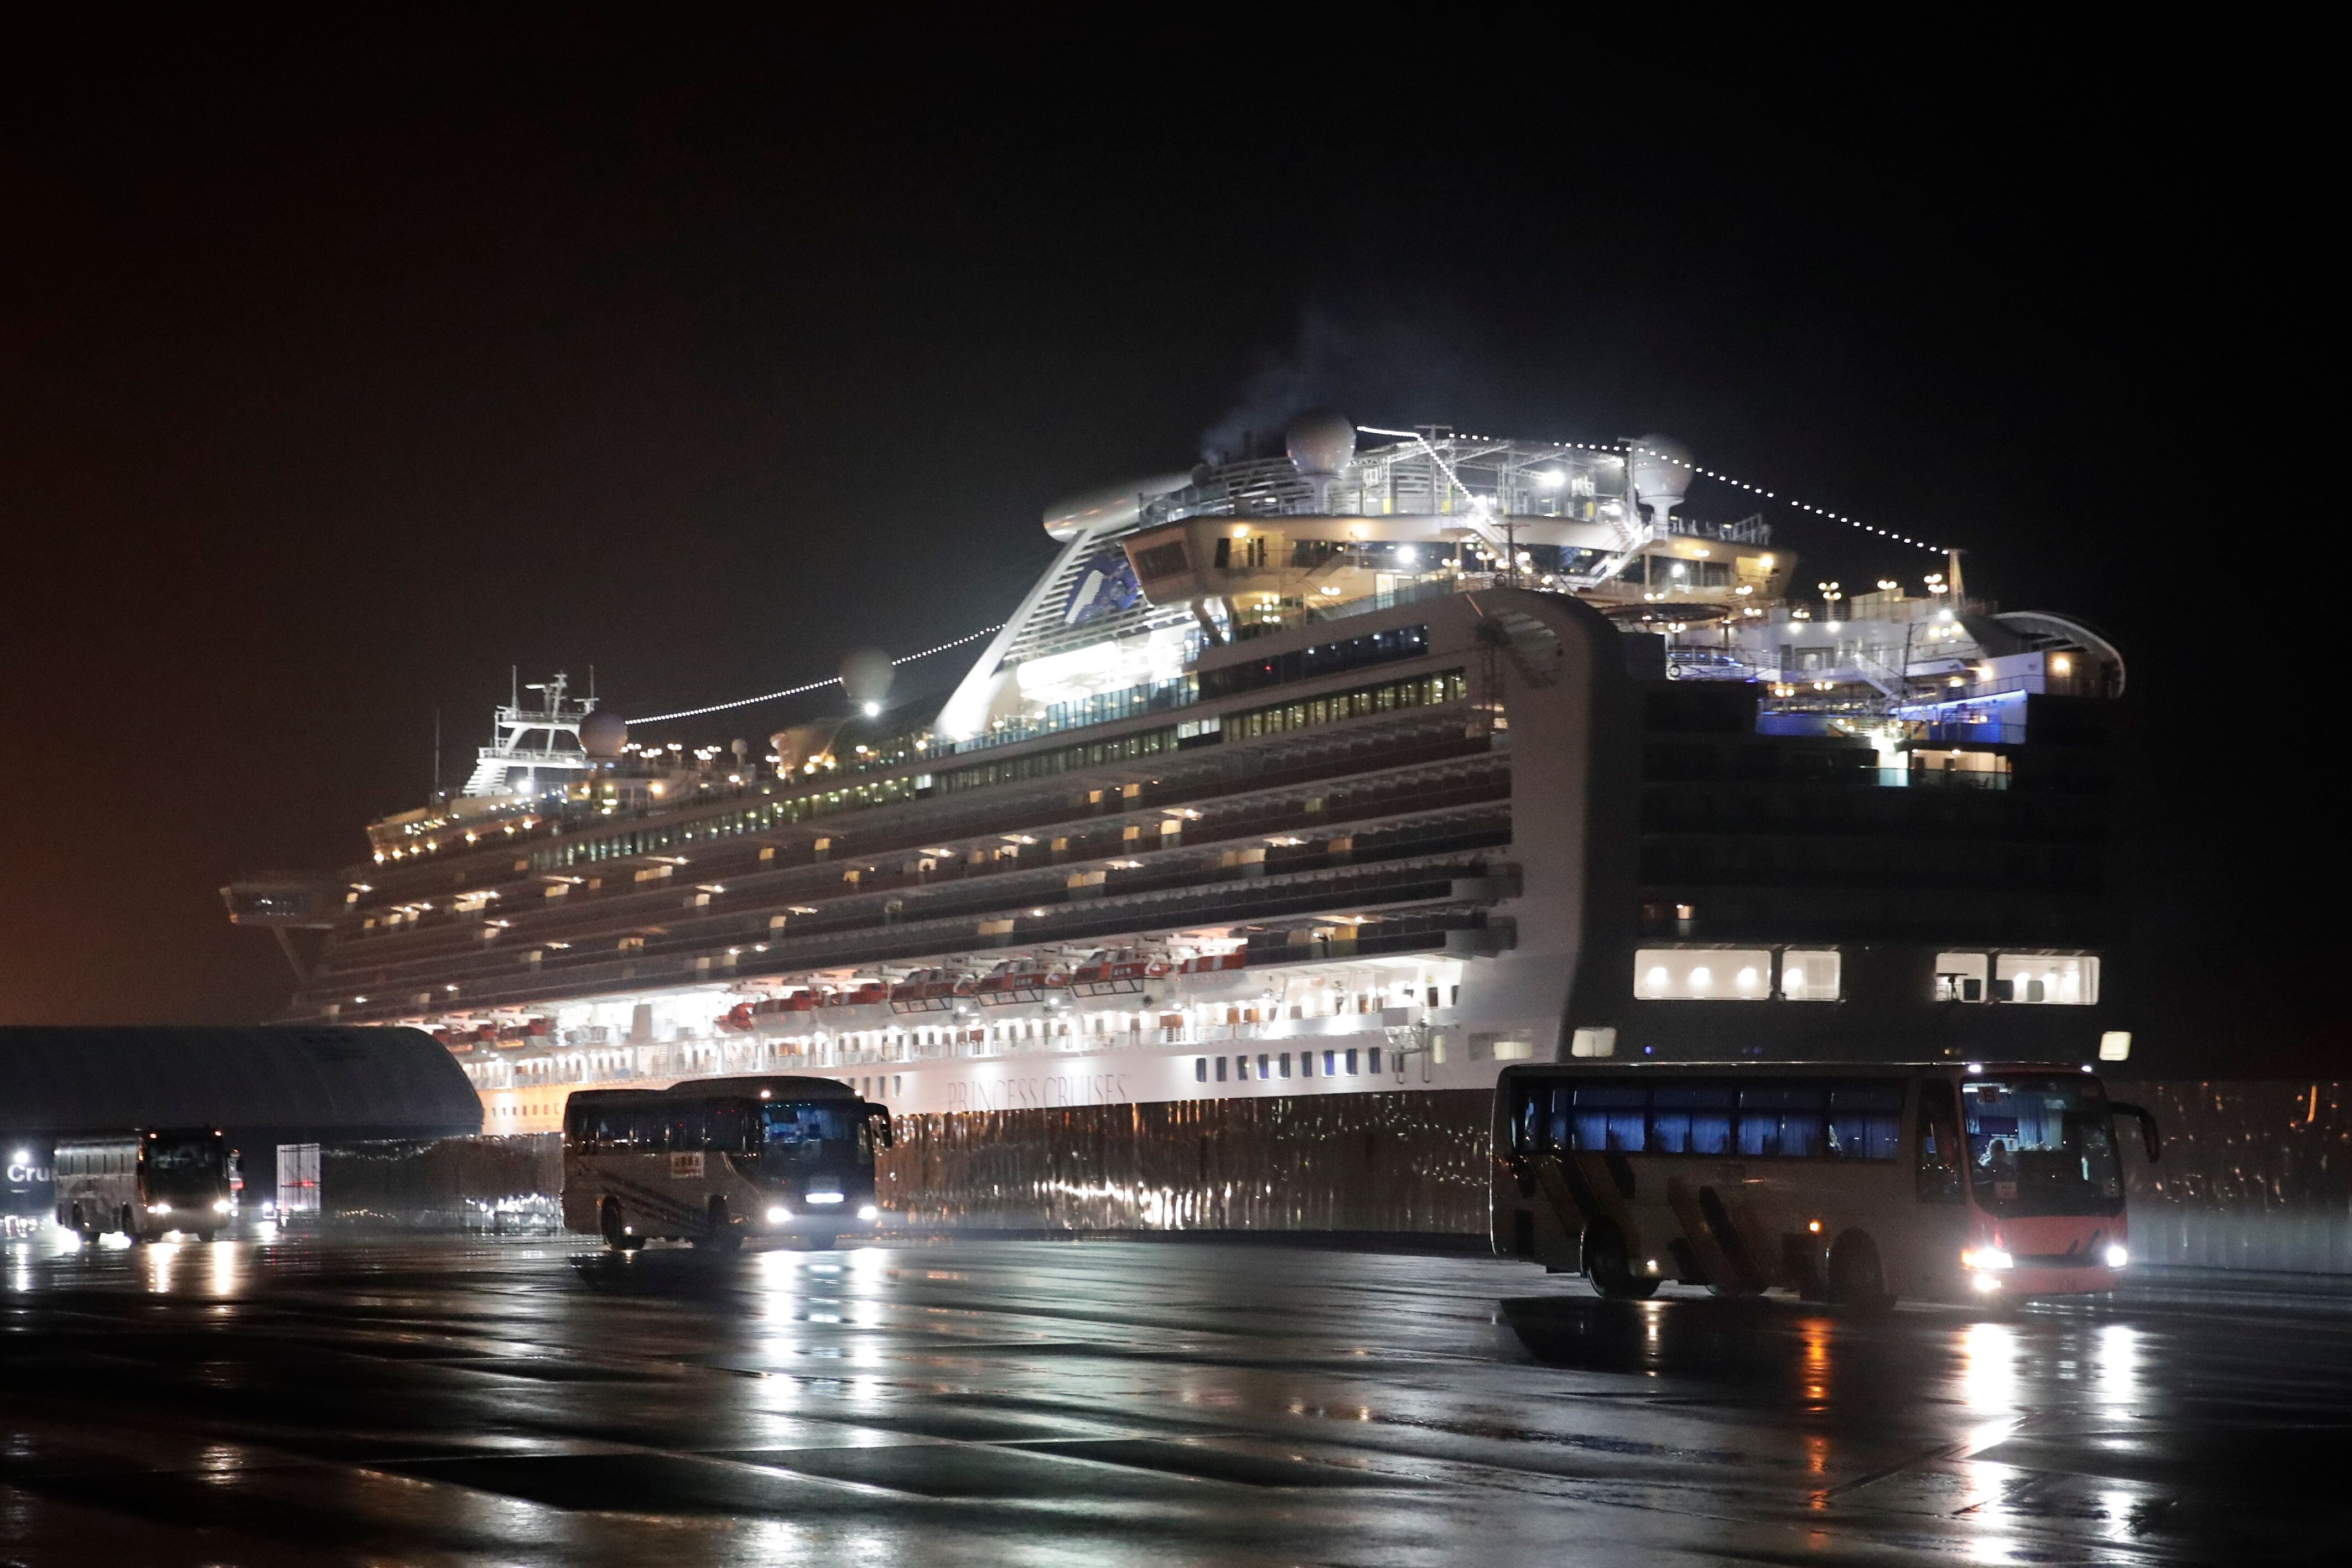 Several dozen Americans are among the 355 people who have become infected with the coronavirus while on the Diamond Princess